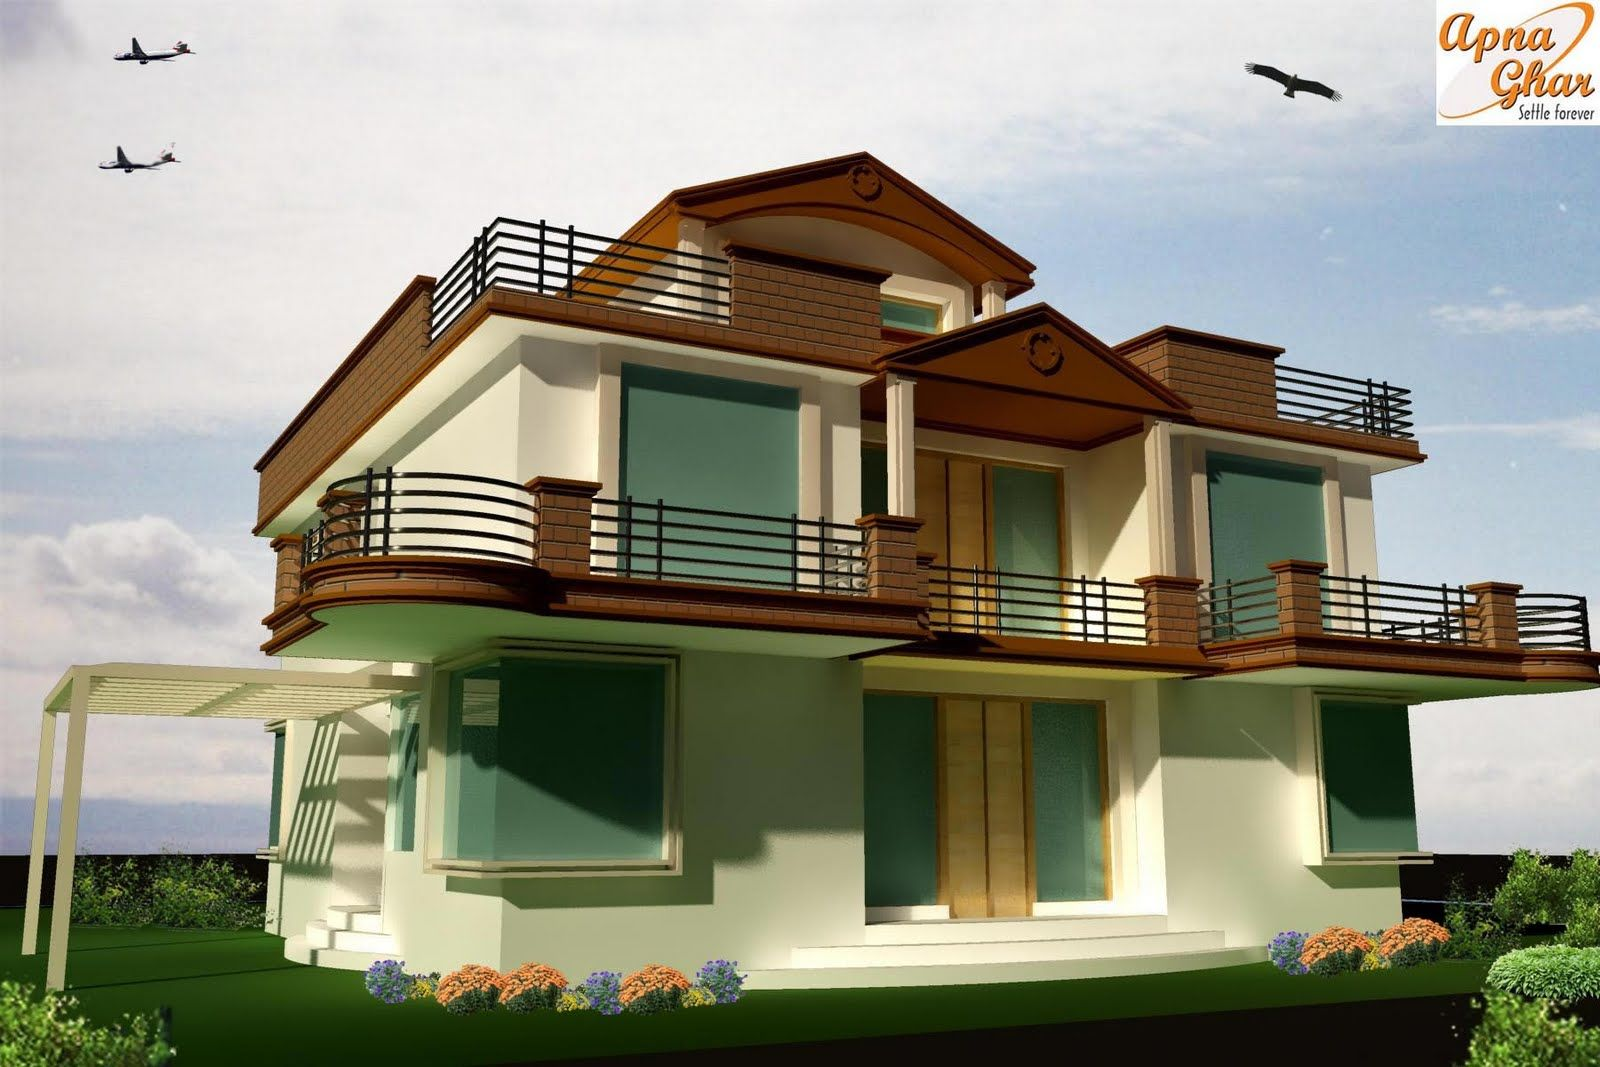 architectural designs modern architectural house plans On design architecture house